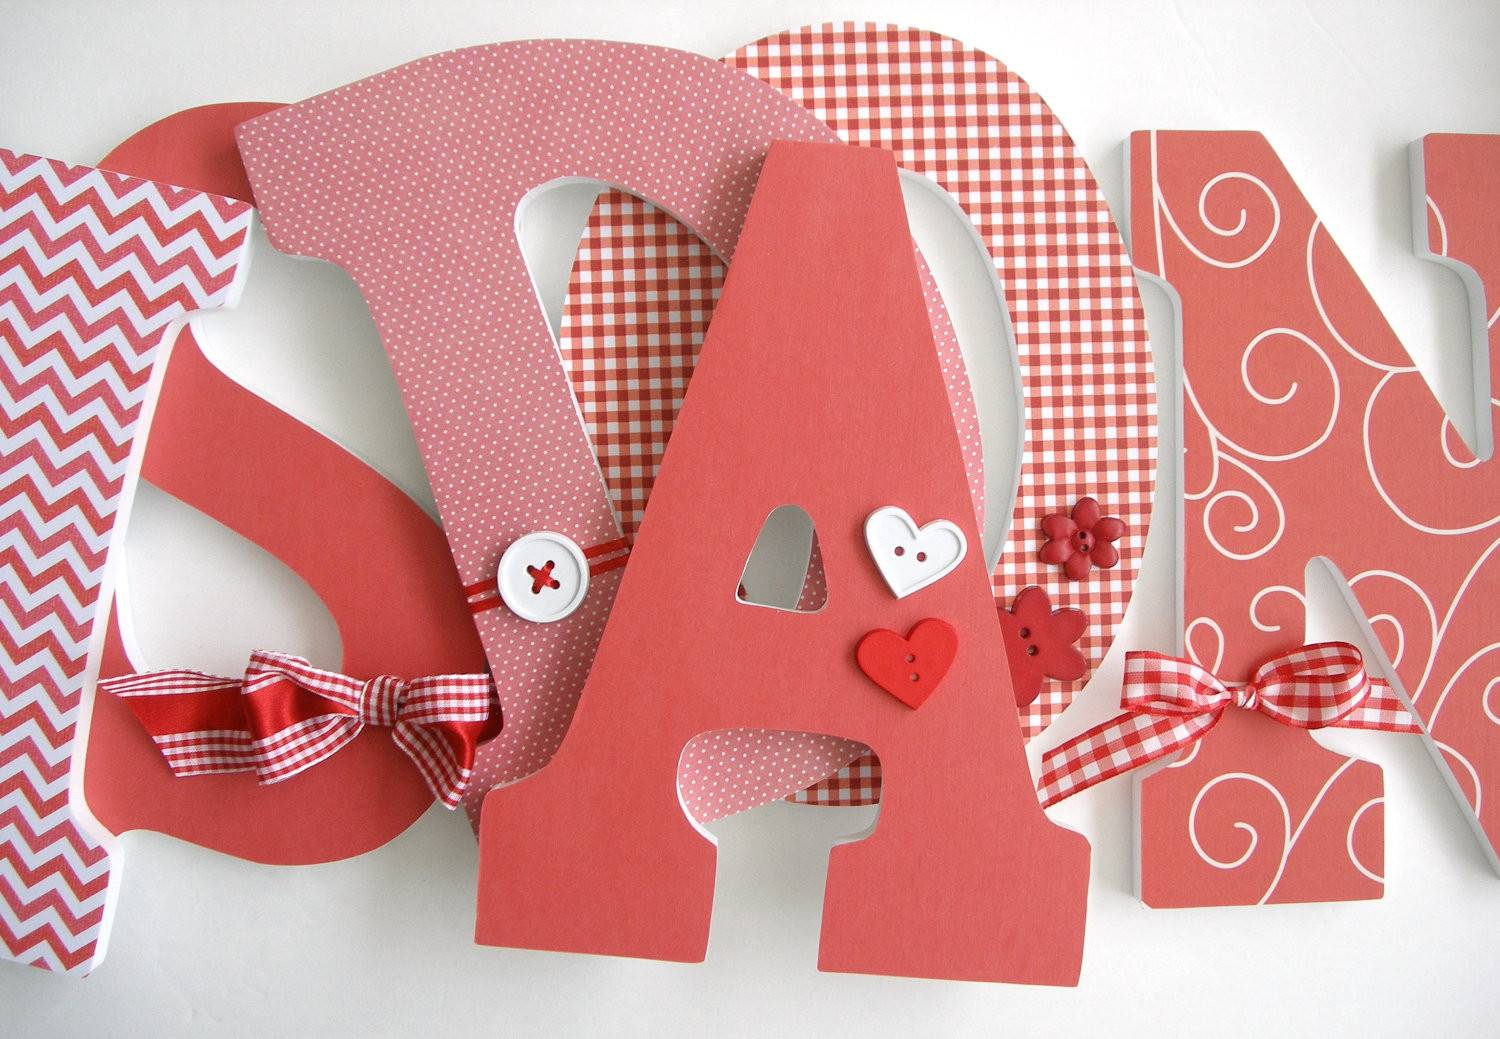 Custom Wooden Letters Gingham Theme Personalized Letterluxe